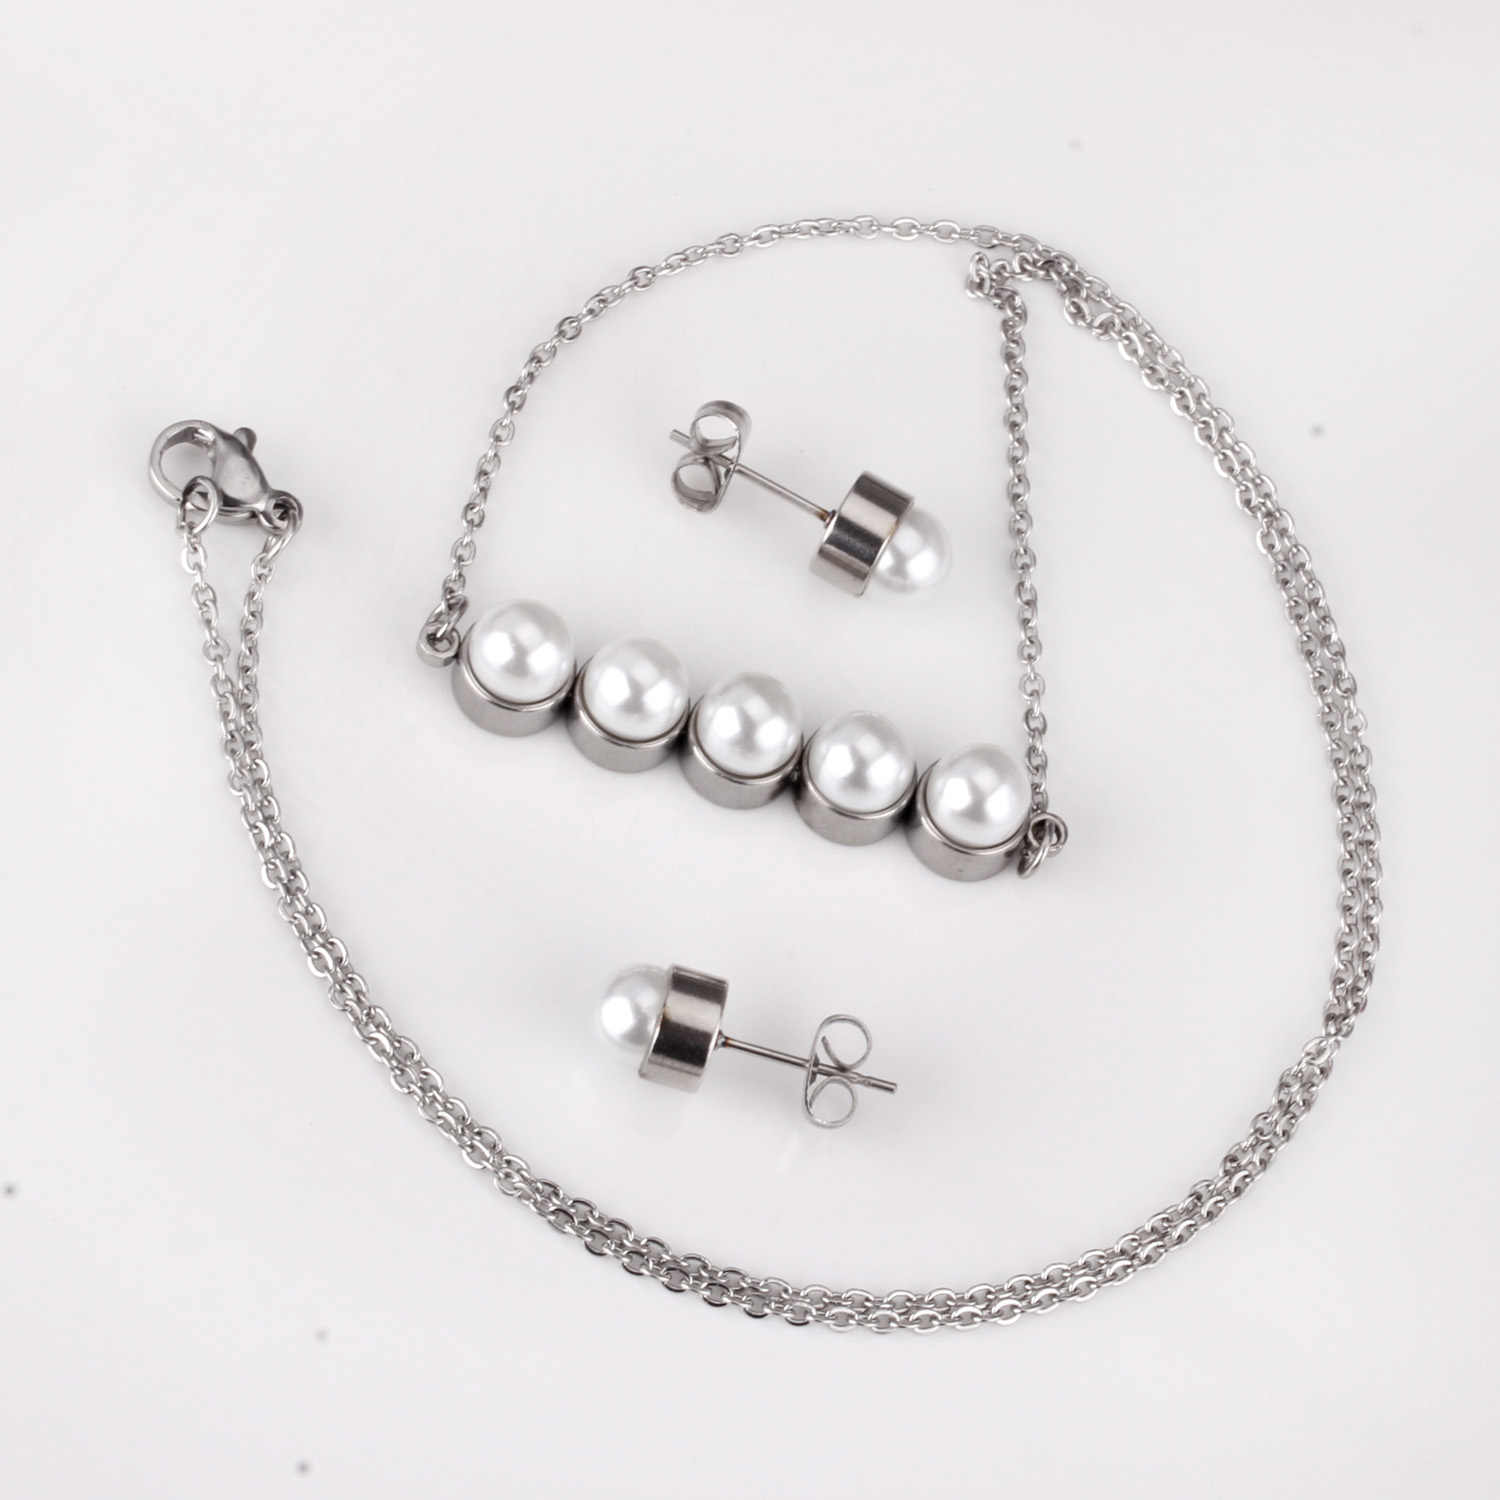 LUXUKISSKIDS New Fake Pearl Wedding Jewelry Set Crystal Necklace Fine Jewelry Party Women Necklace Bridal Earrings